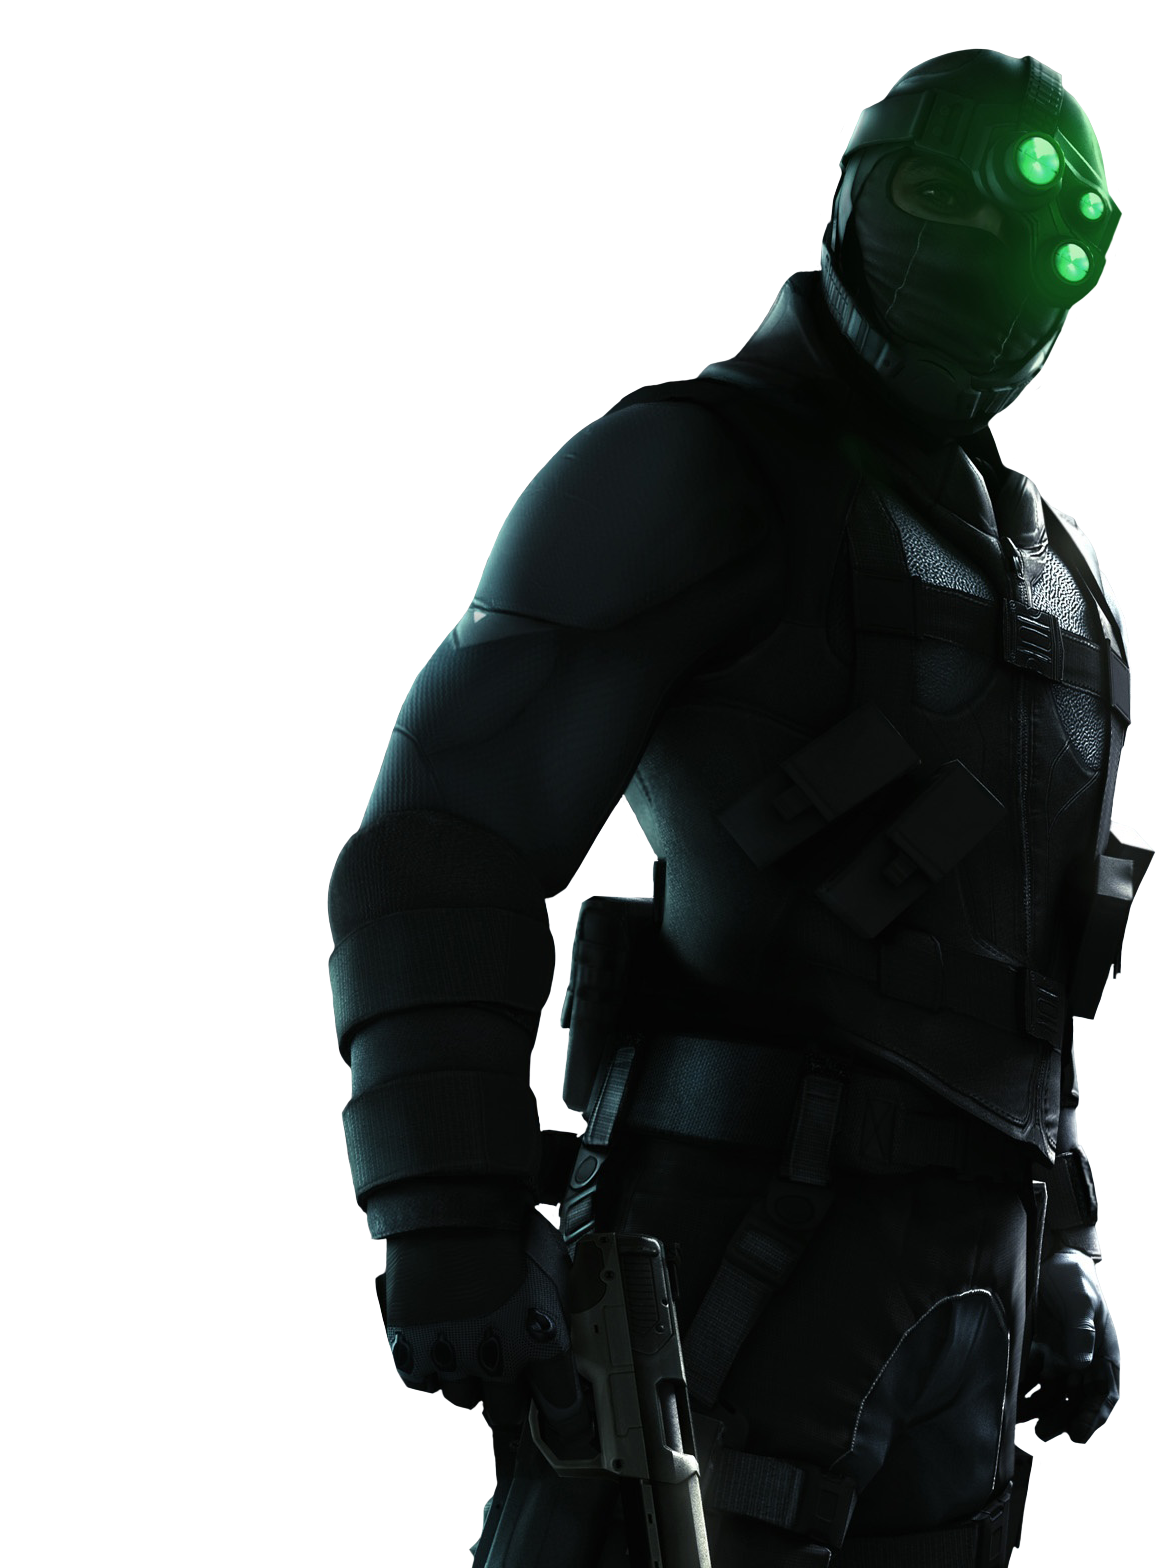 http://1.bp.blogspot.com/-8igdaUc1aNQ/TsY9ks_9qrI/AAAAAAAAELQ/HFukGVfxKxE/s1600/Splinter_Cell_Conviction_5.png